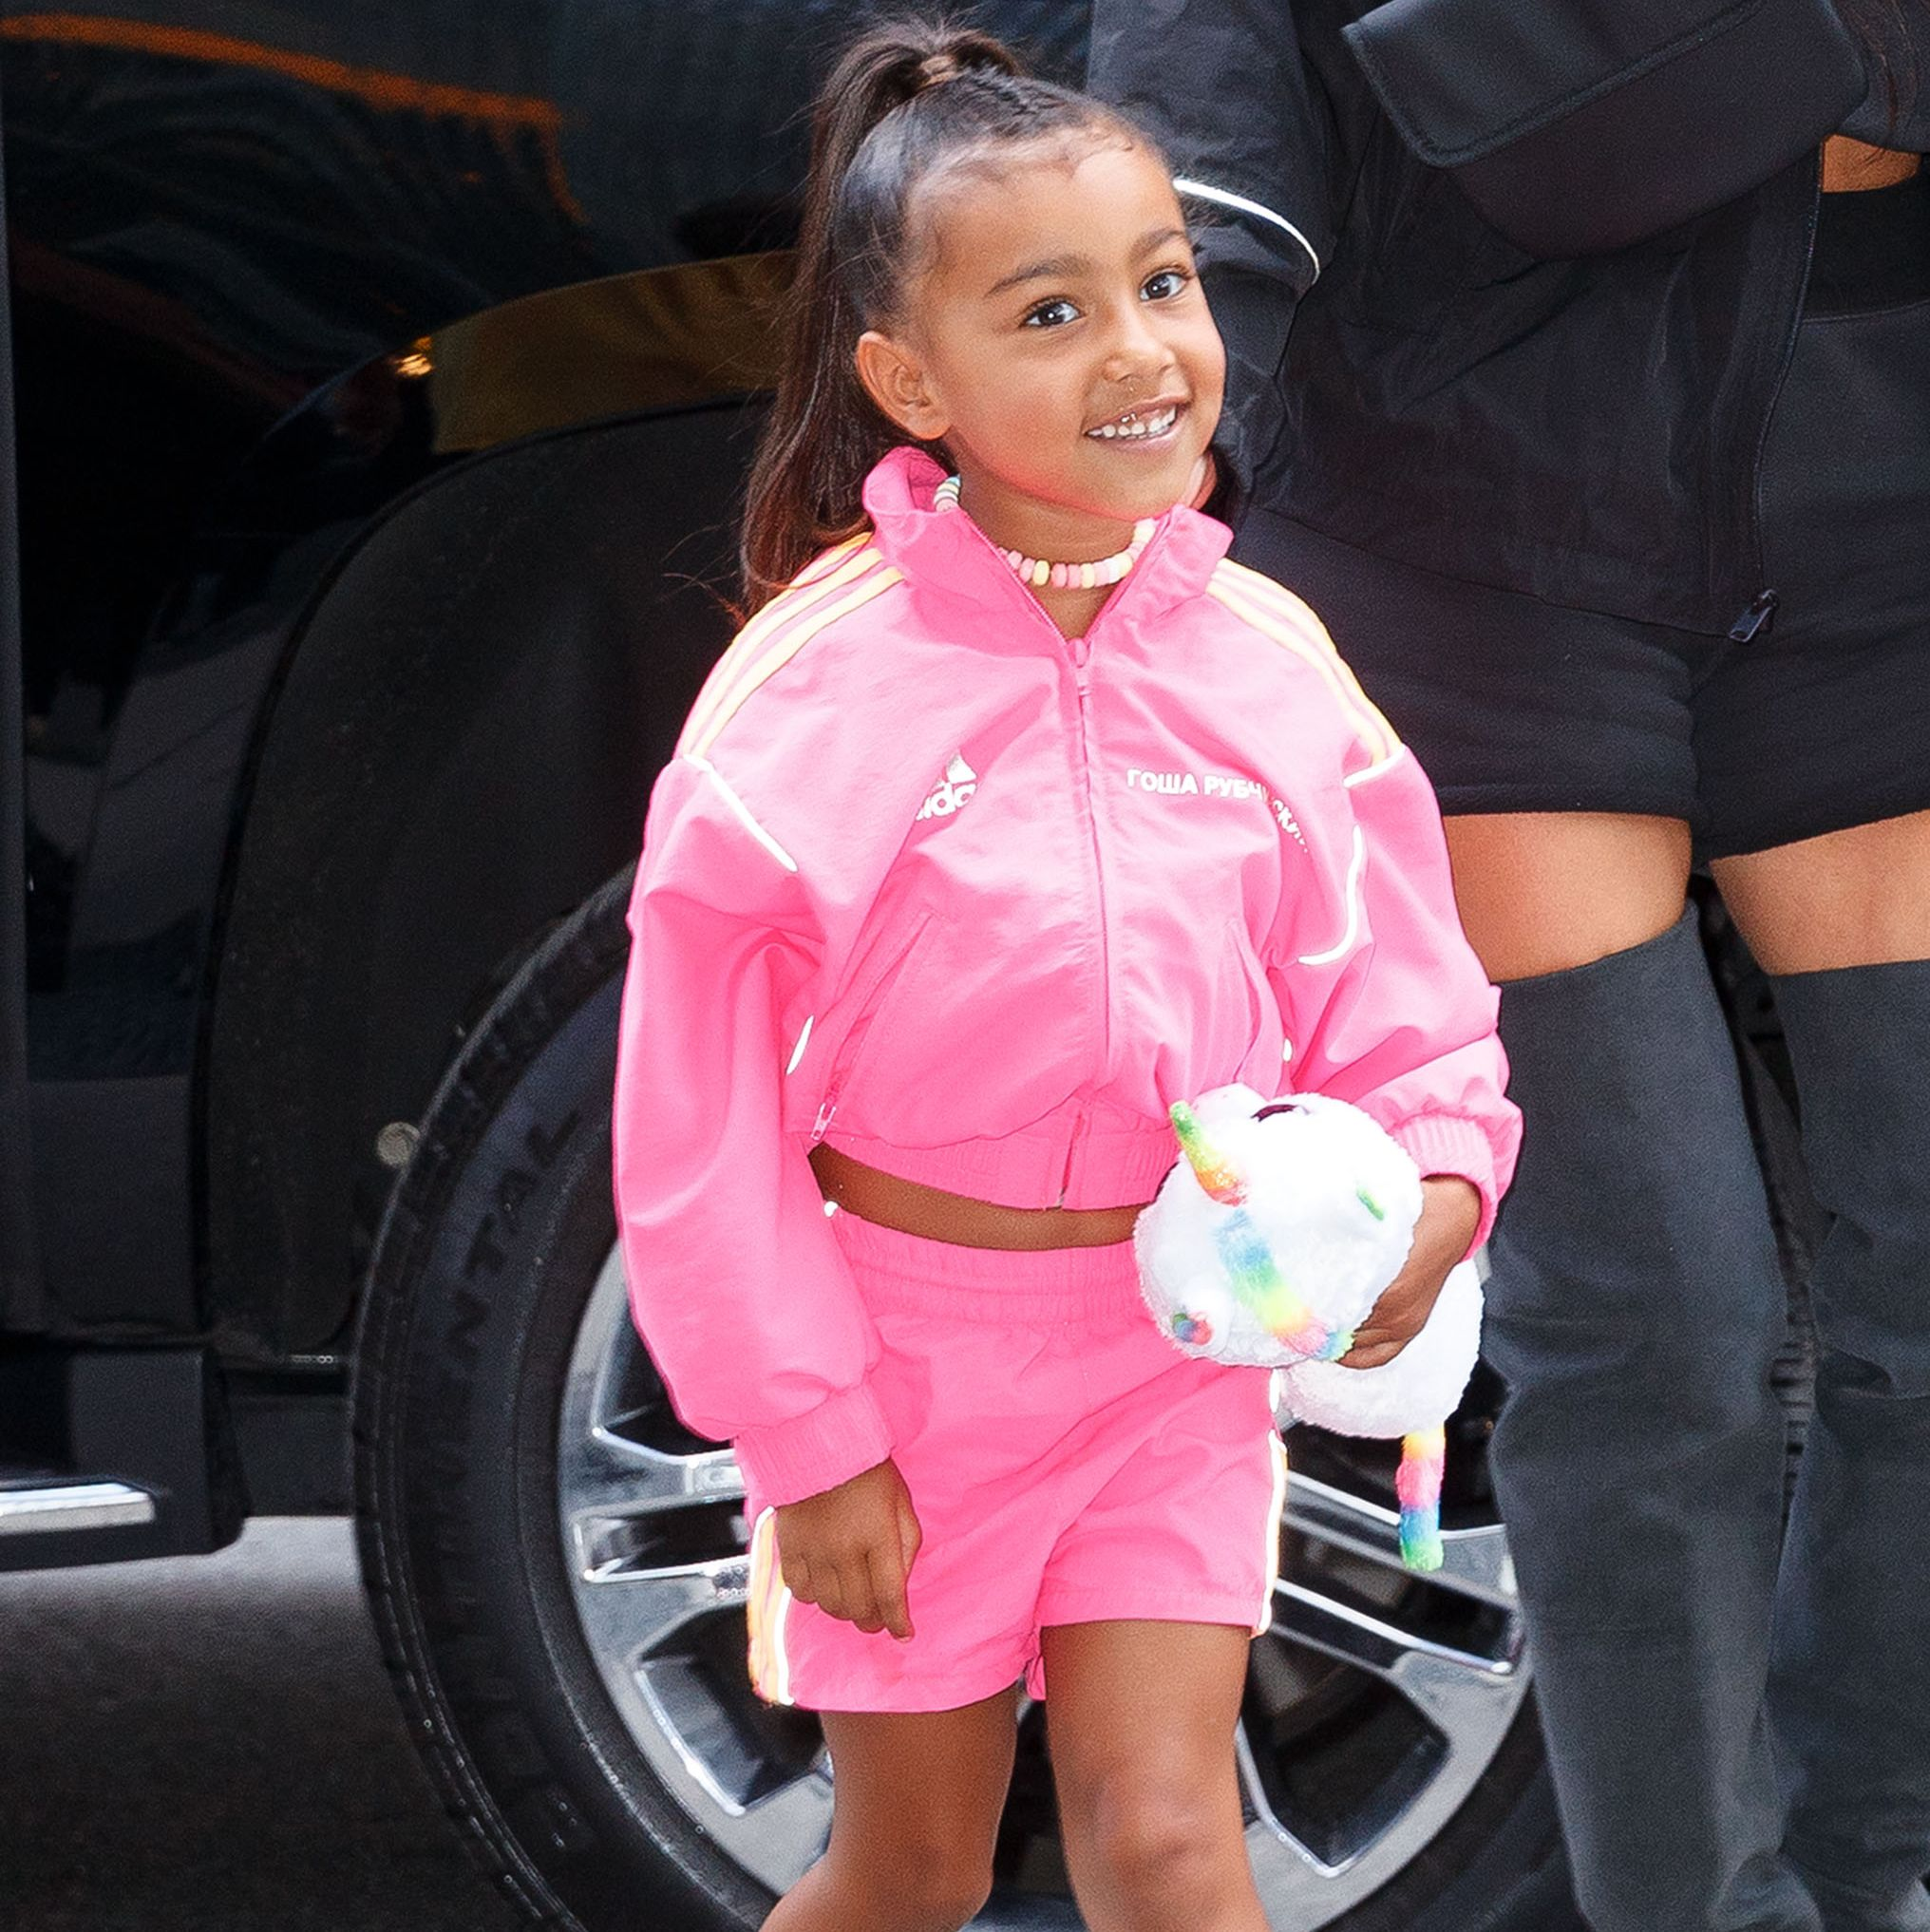 North West Was a Whole Mood and Was the Most Lit at Kanye West's Sunday Service